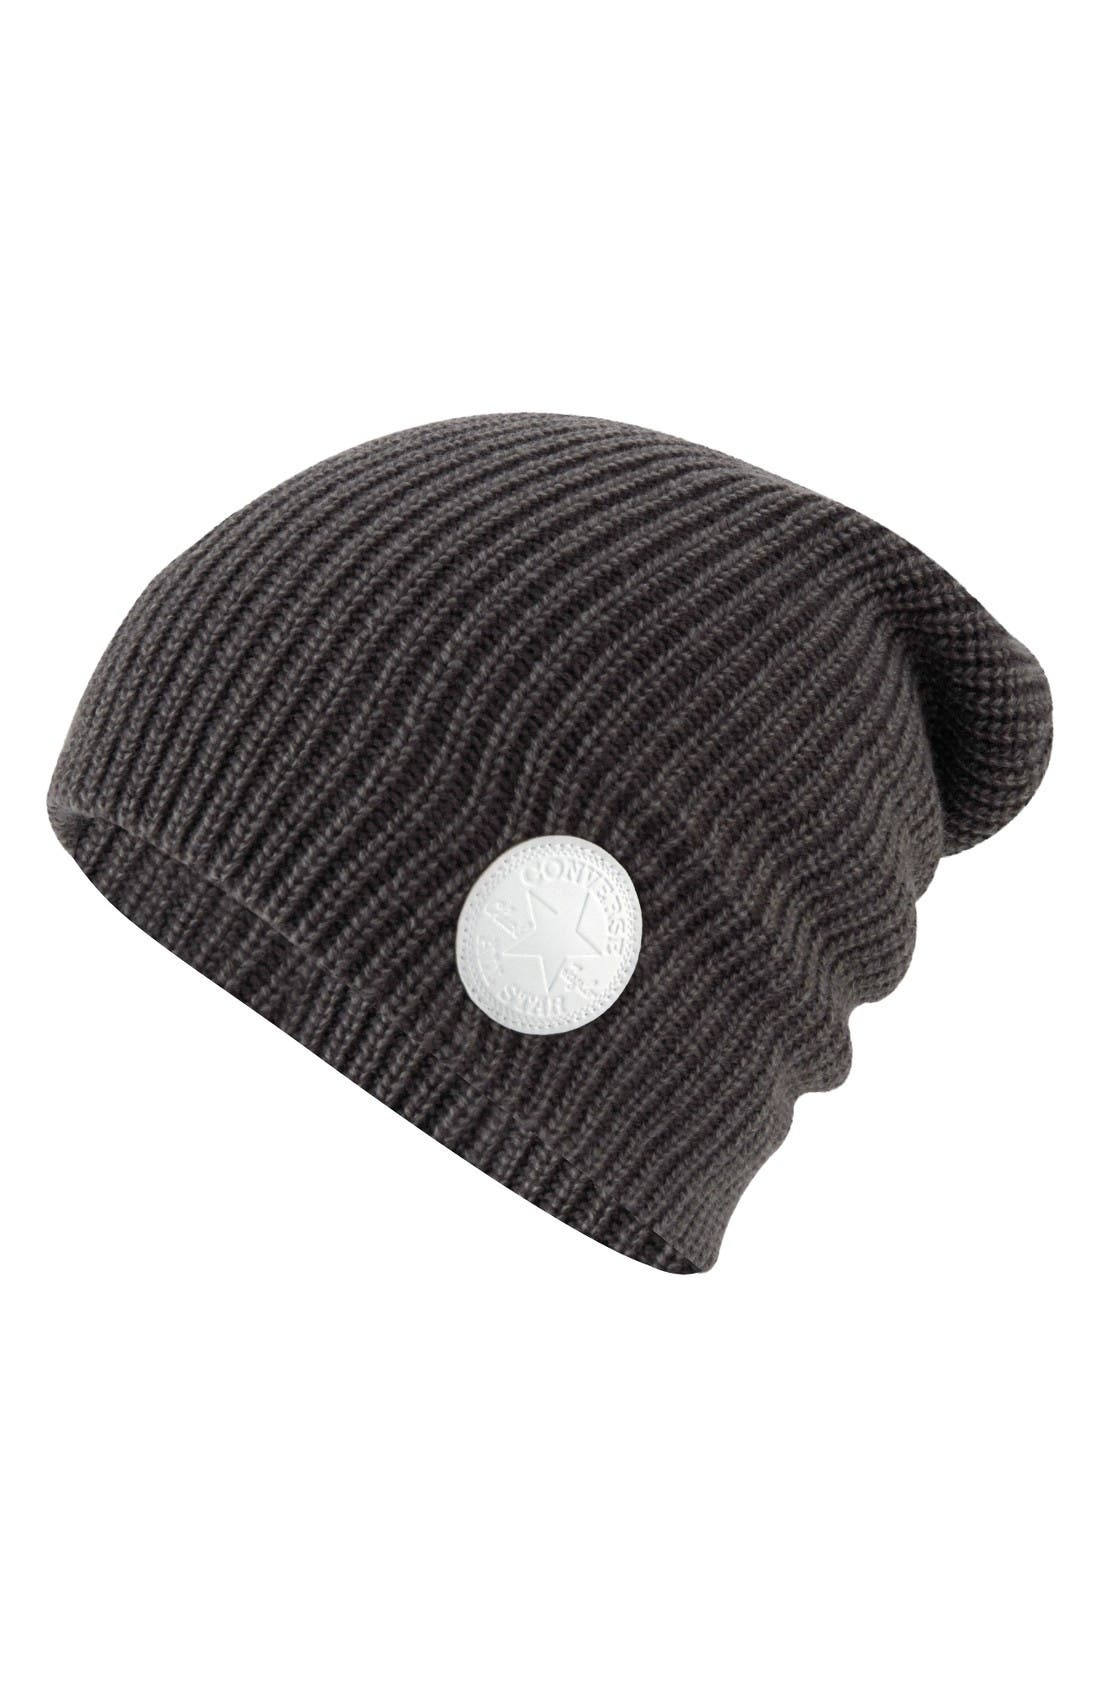 Main Image - Converse 'Winter Slouch' Knit Cap